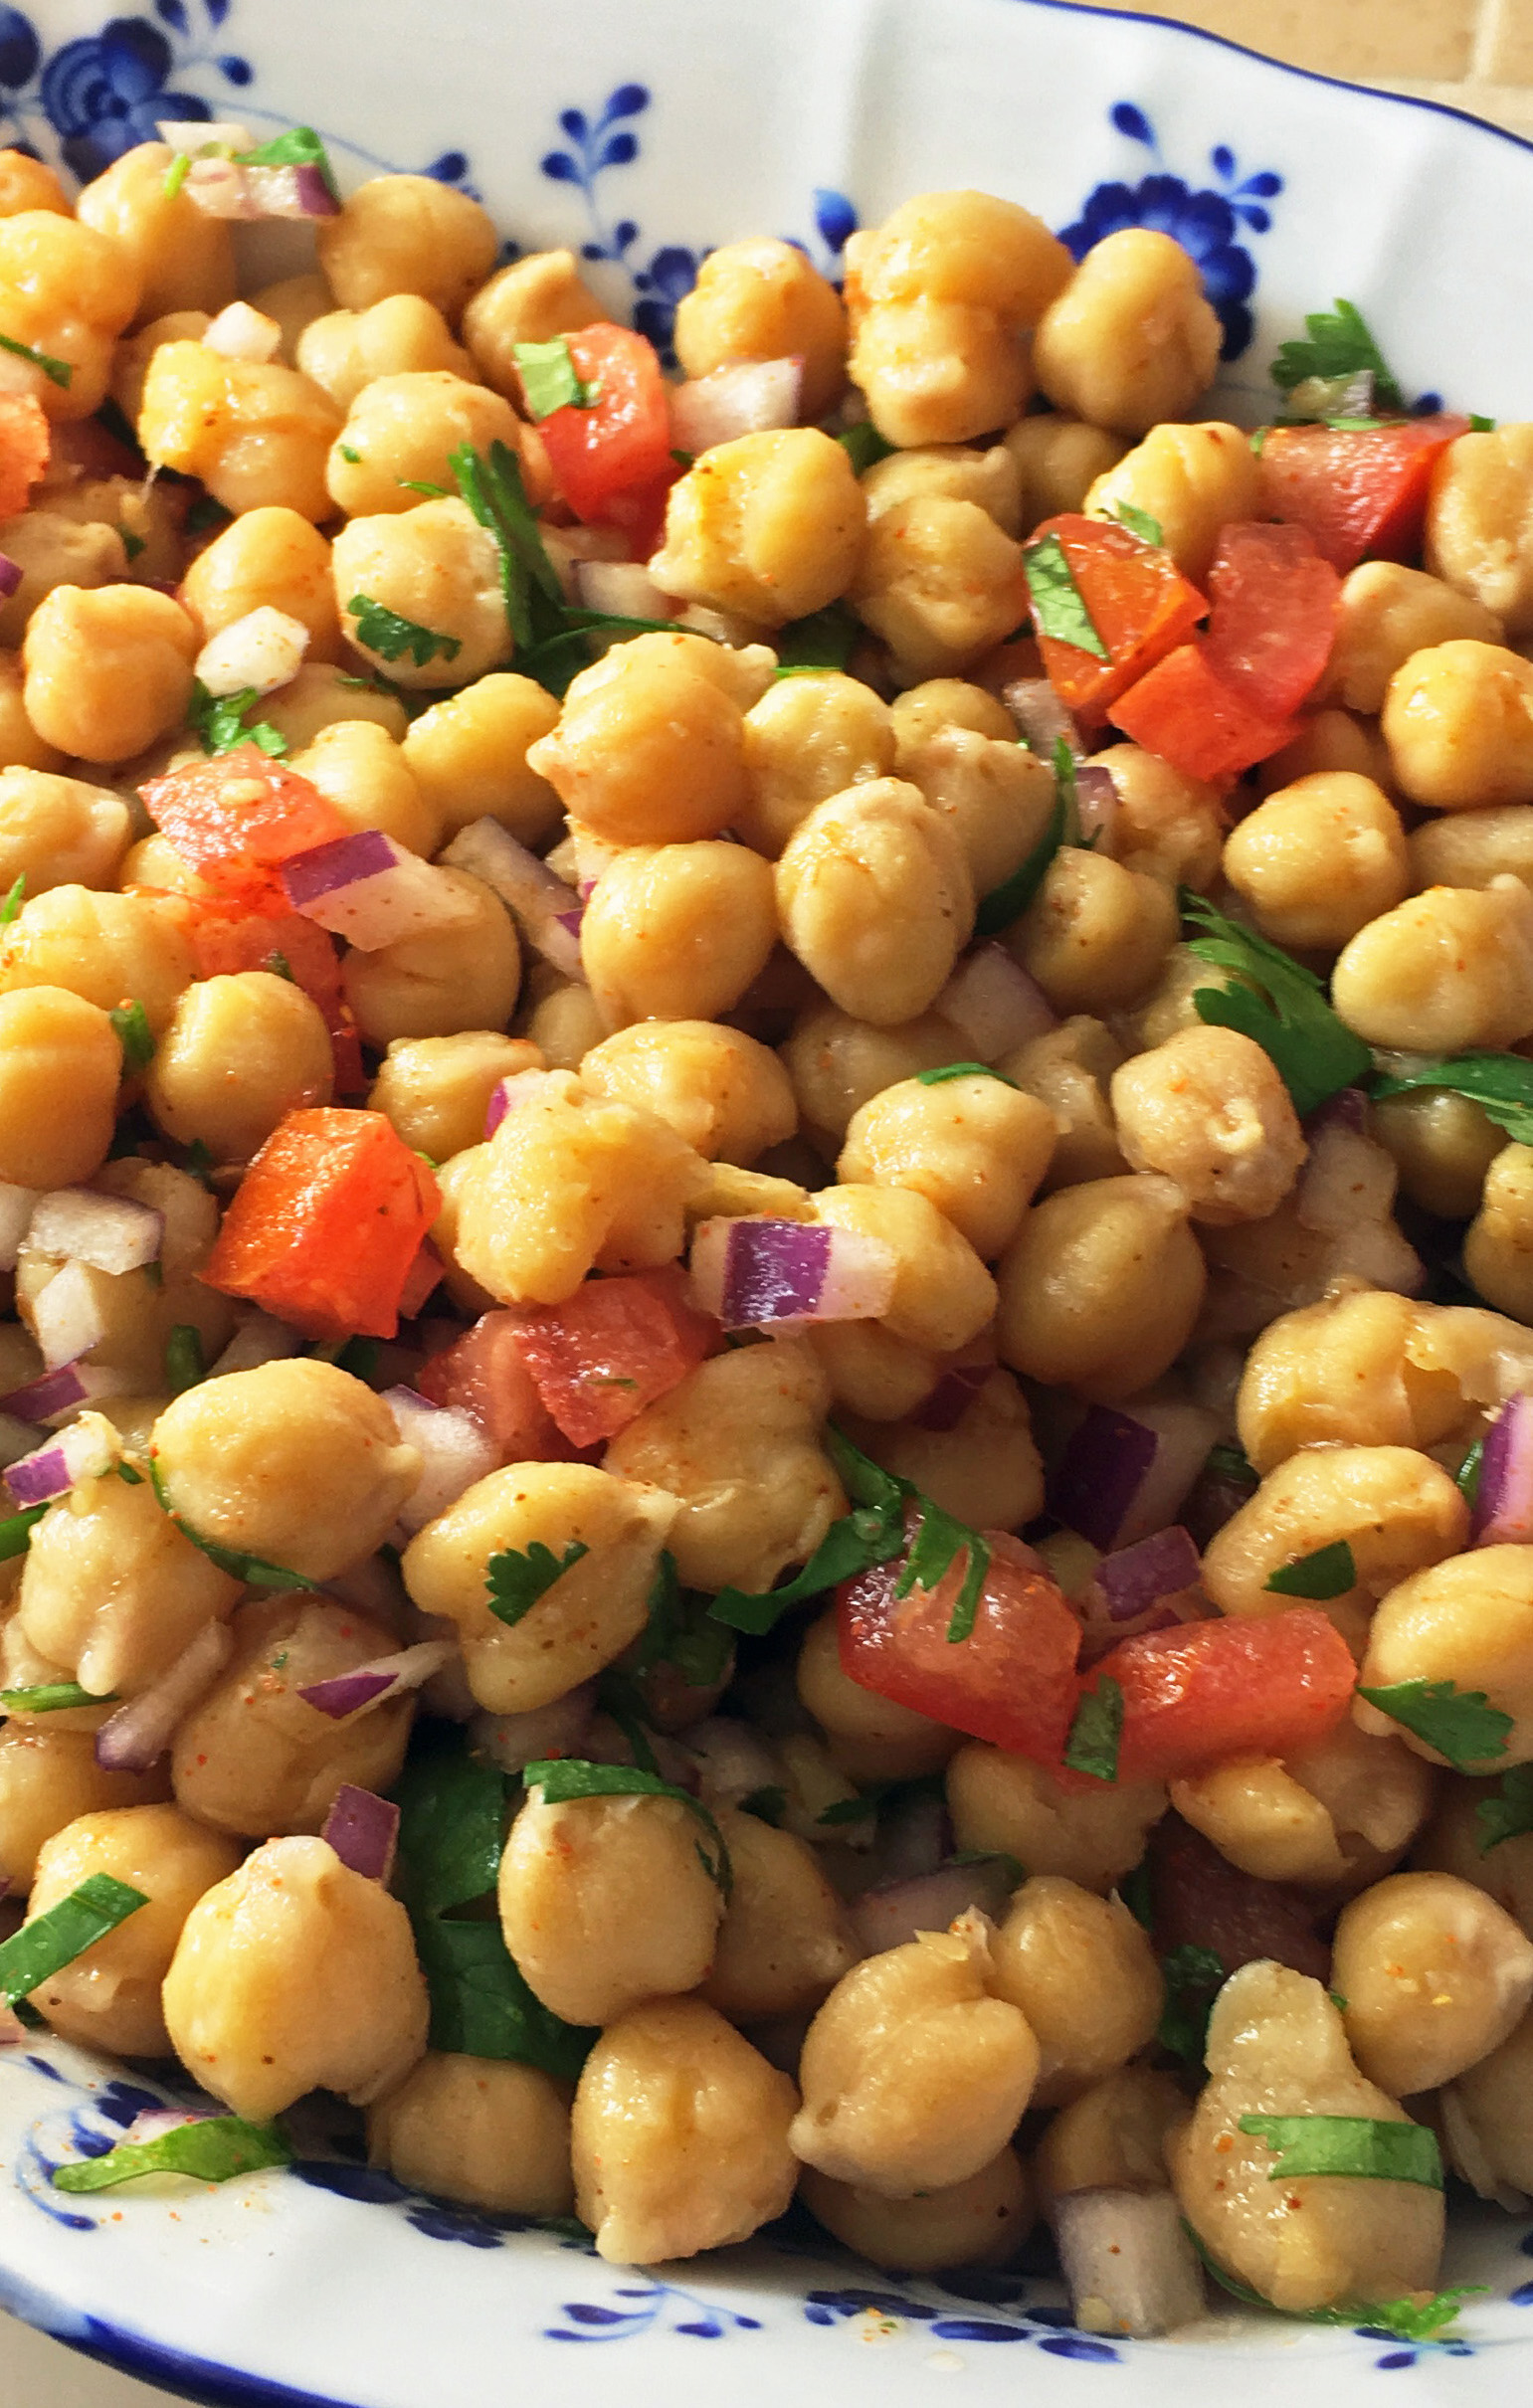 chana salaad - chickpea salad